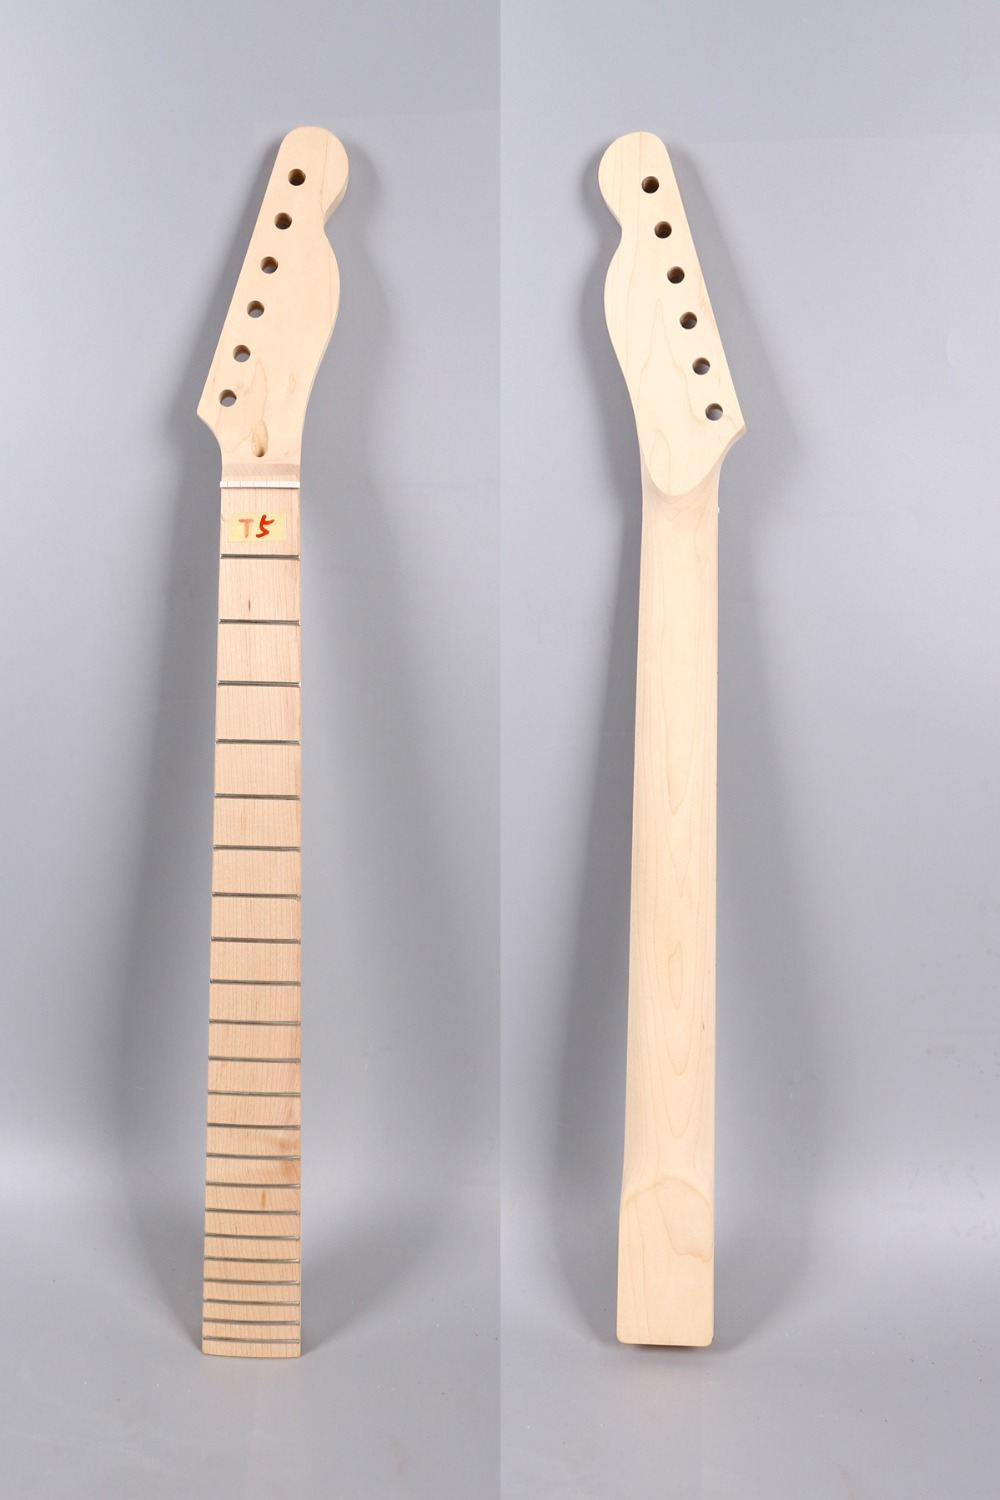 Yinfente electric guitar neck replacement 22 fret Rosewood fretboard Dot inlay 25.5 inch Maple telecaster Tele Neck left hand electric bass guitar neck 21 fret 34 inch maple wood rosewood fretboard 719